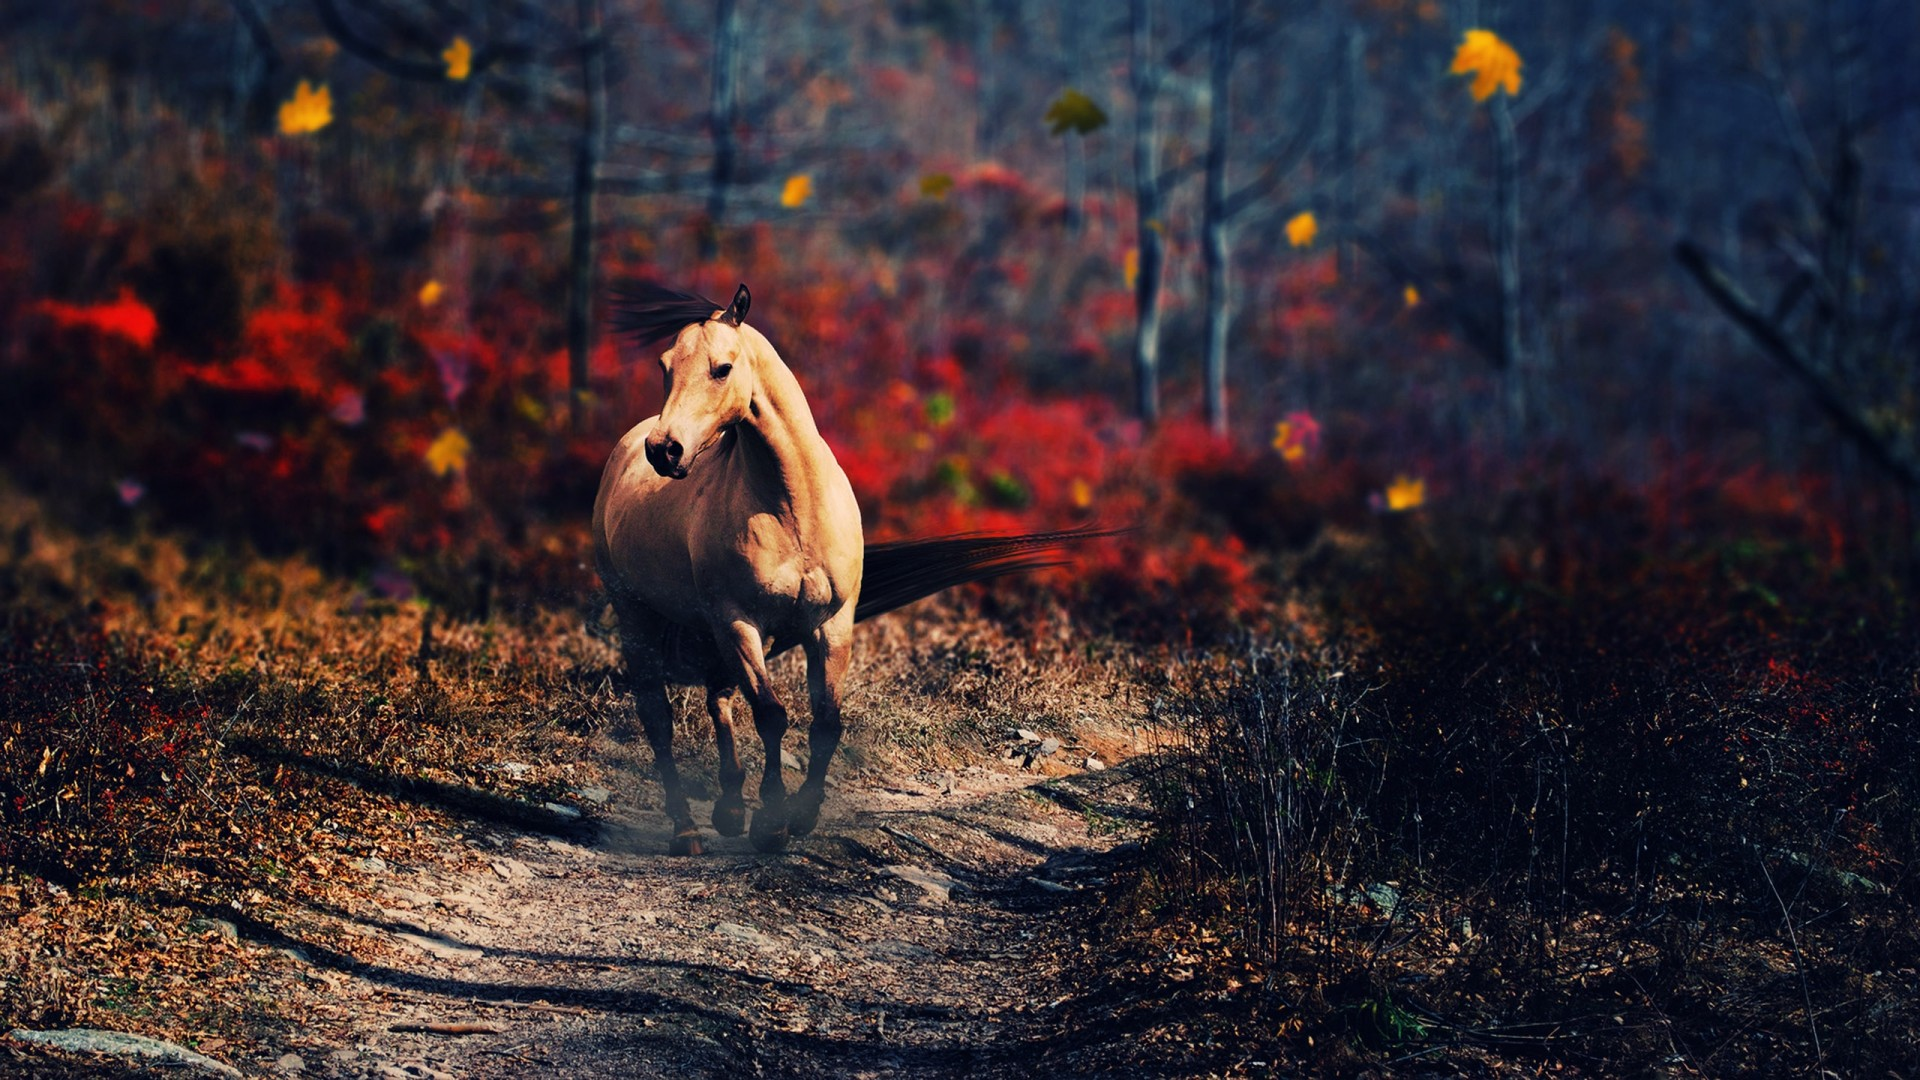 High Resolution Free Running Horse Wallpaper In Hd Iphone 7